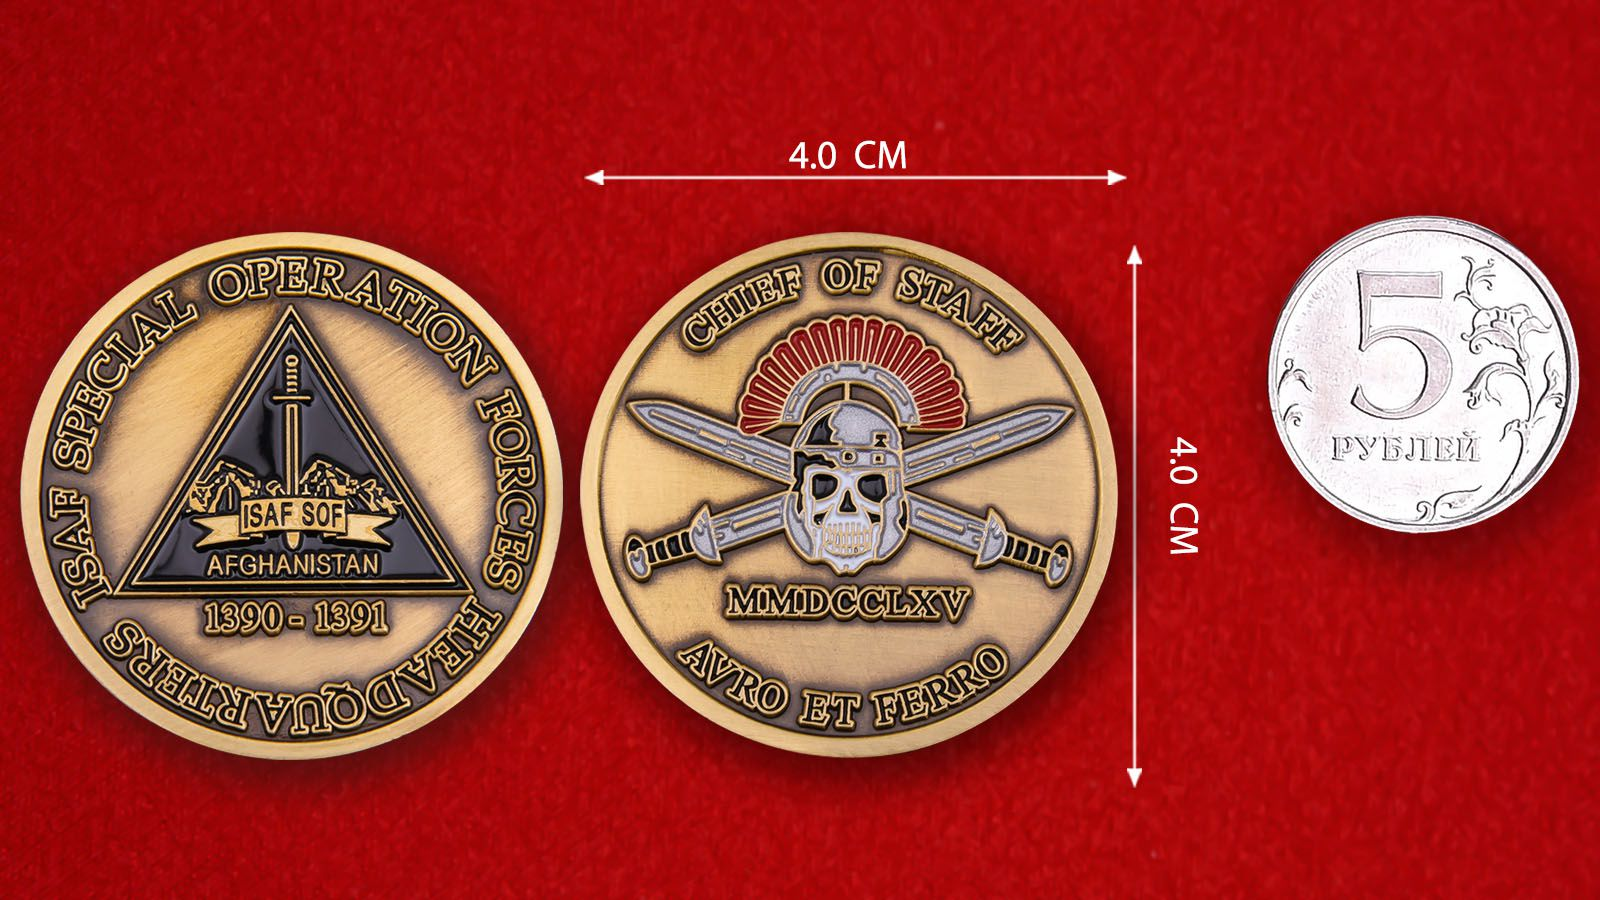 "Challenge Coin ""ISAF special operations force headquarters"" - comparative size"